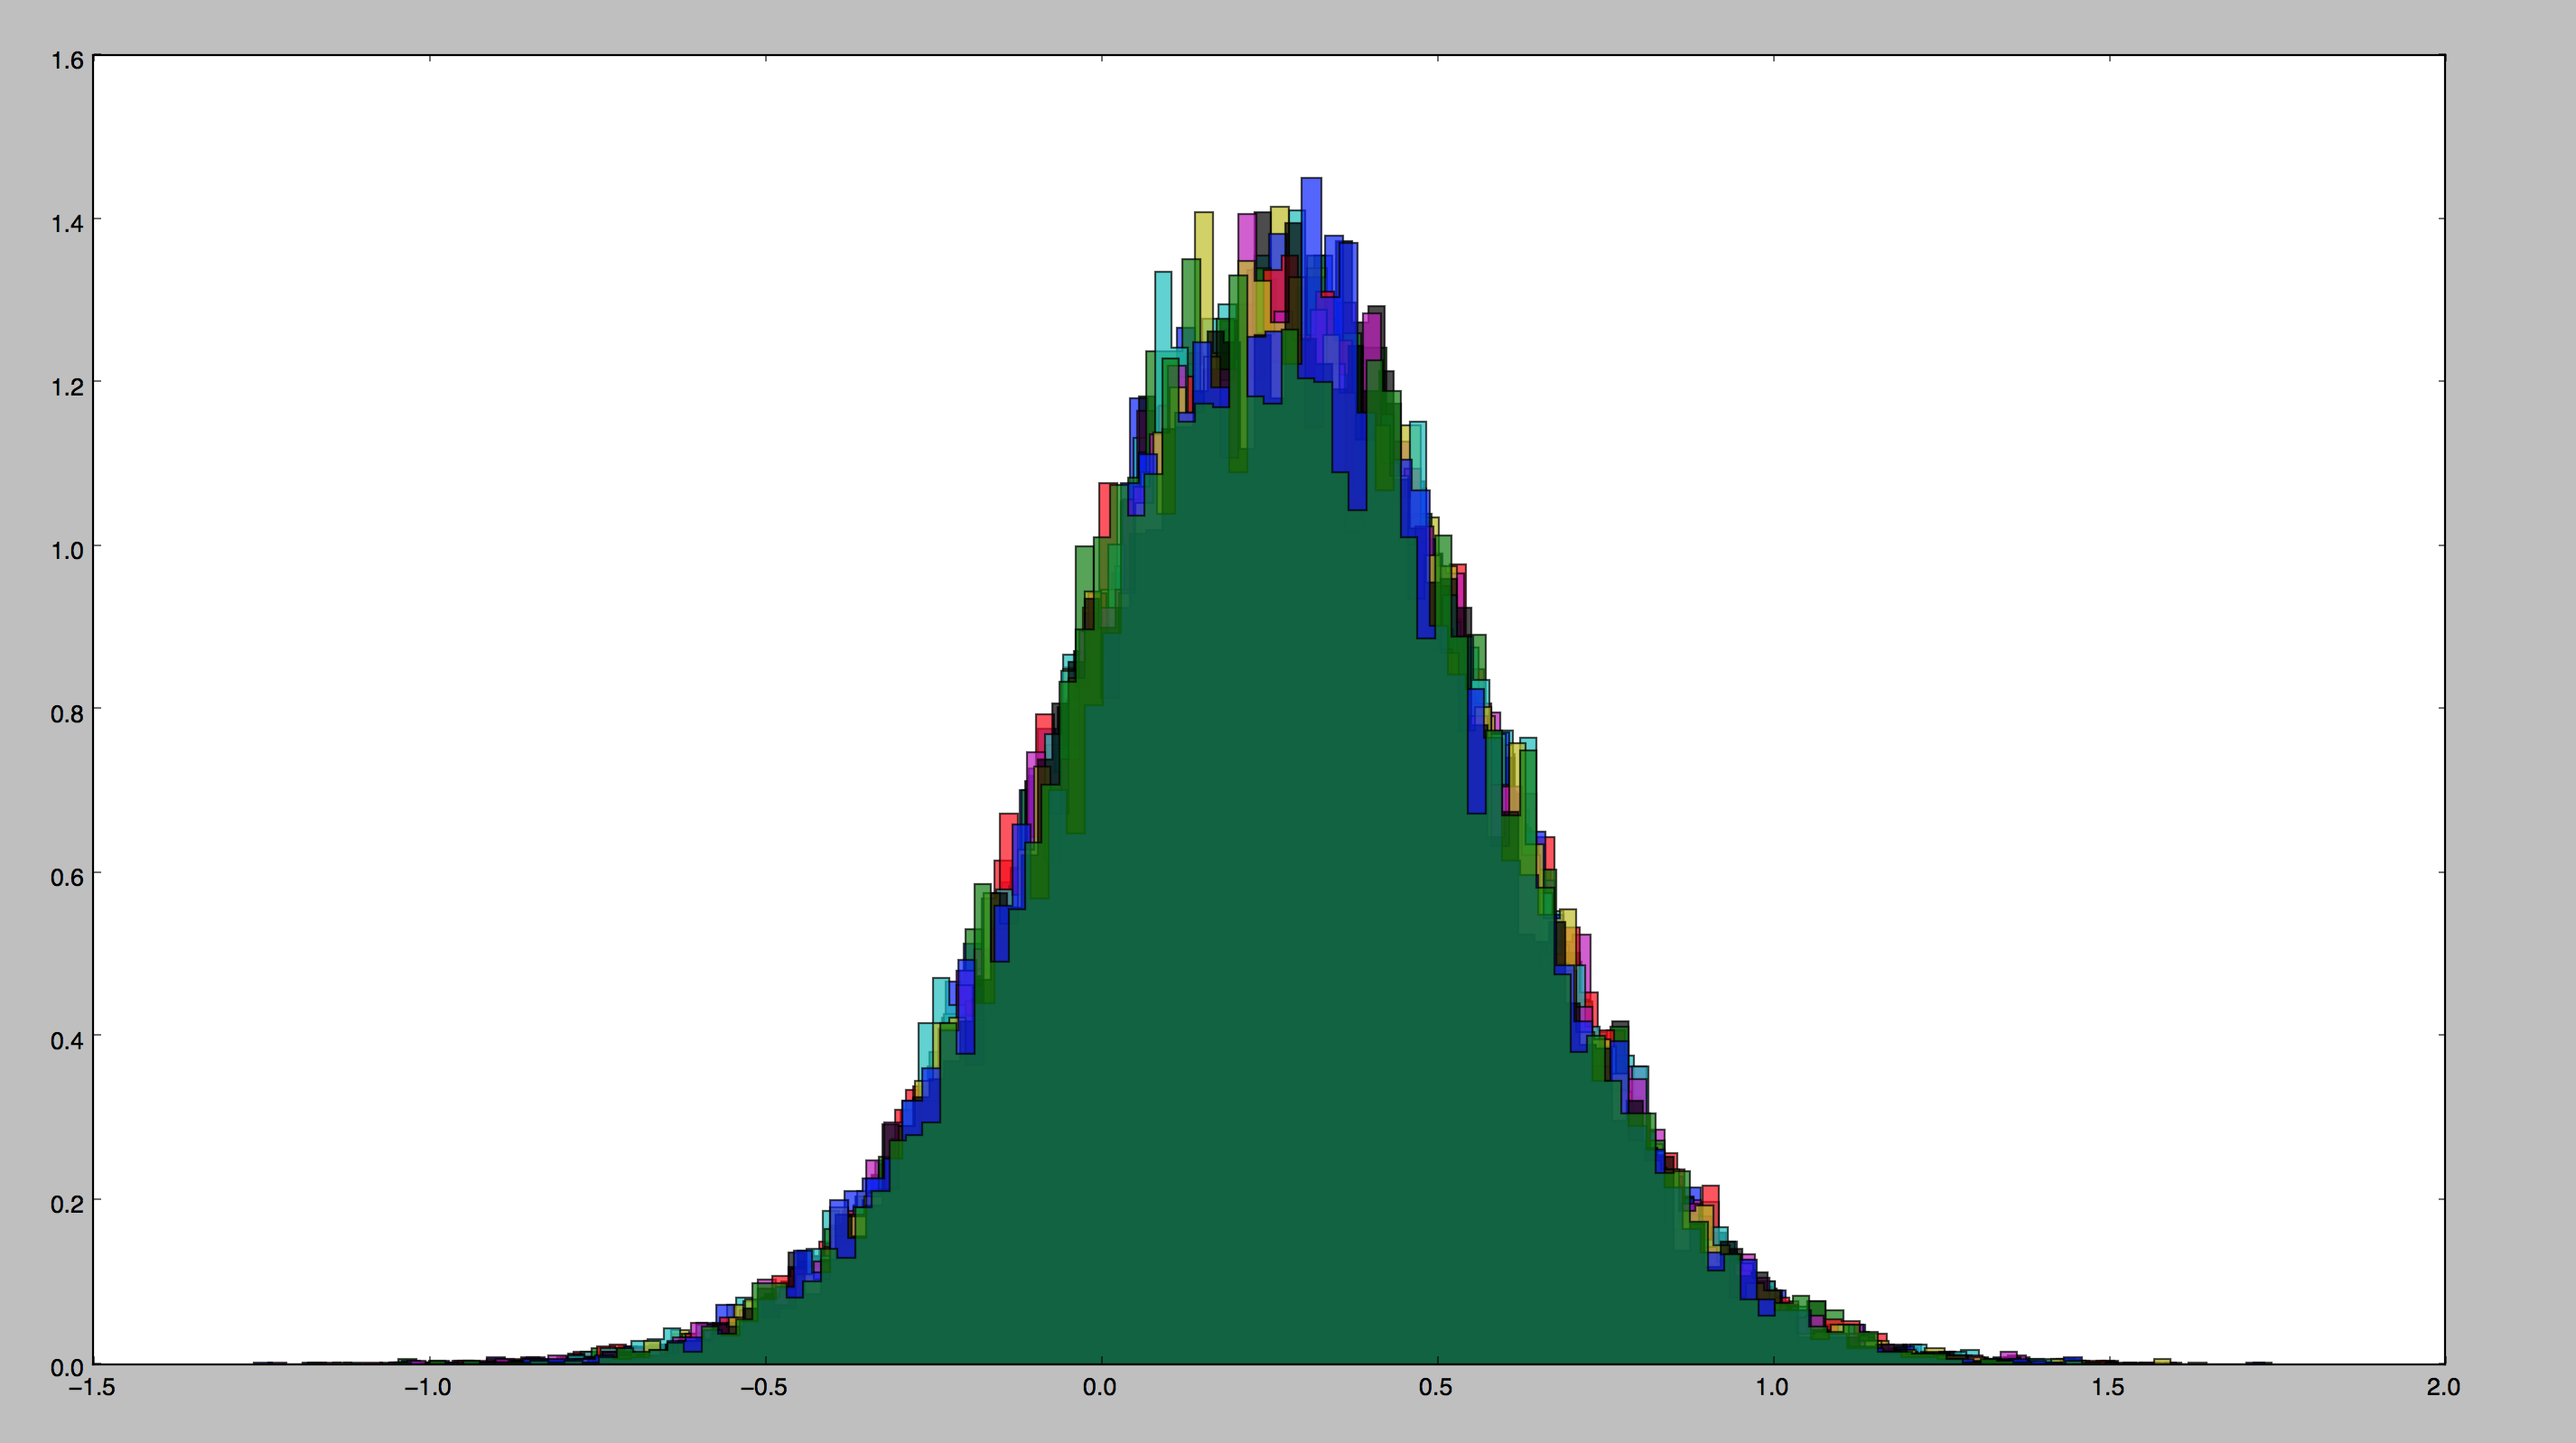 The outcome of a averaging many smaller simulations clearly surrounds a central point.